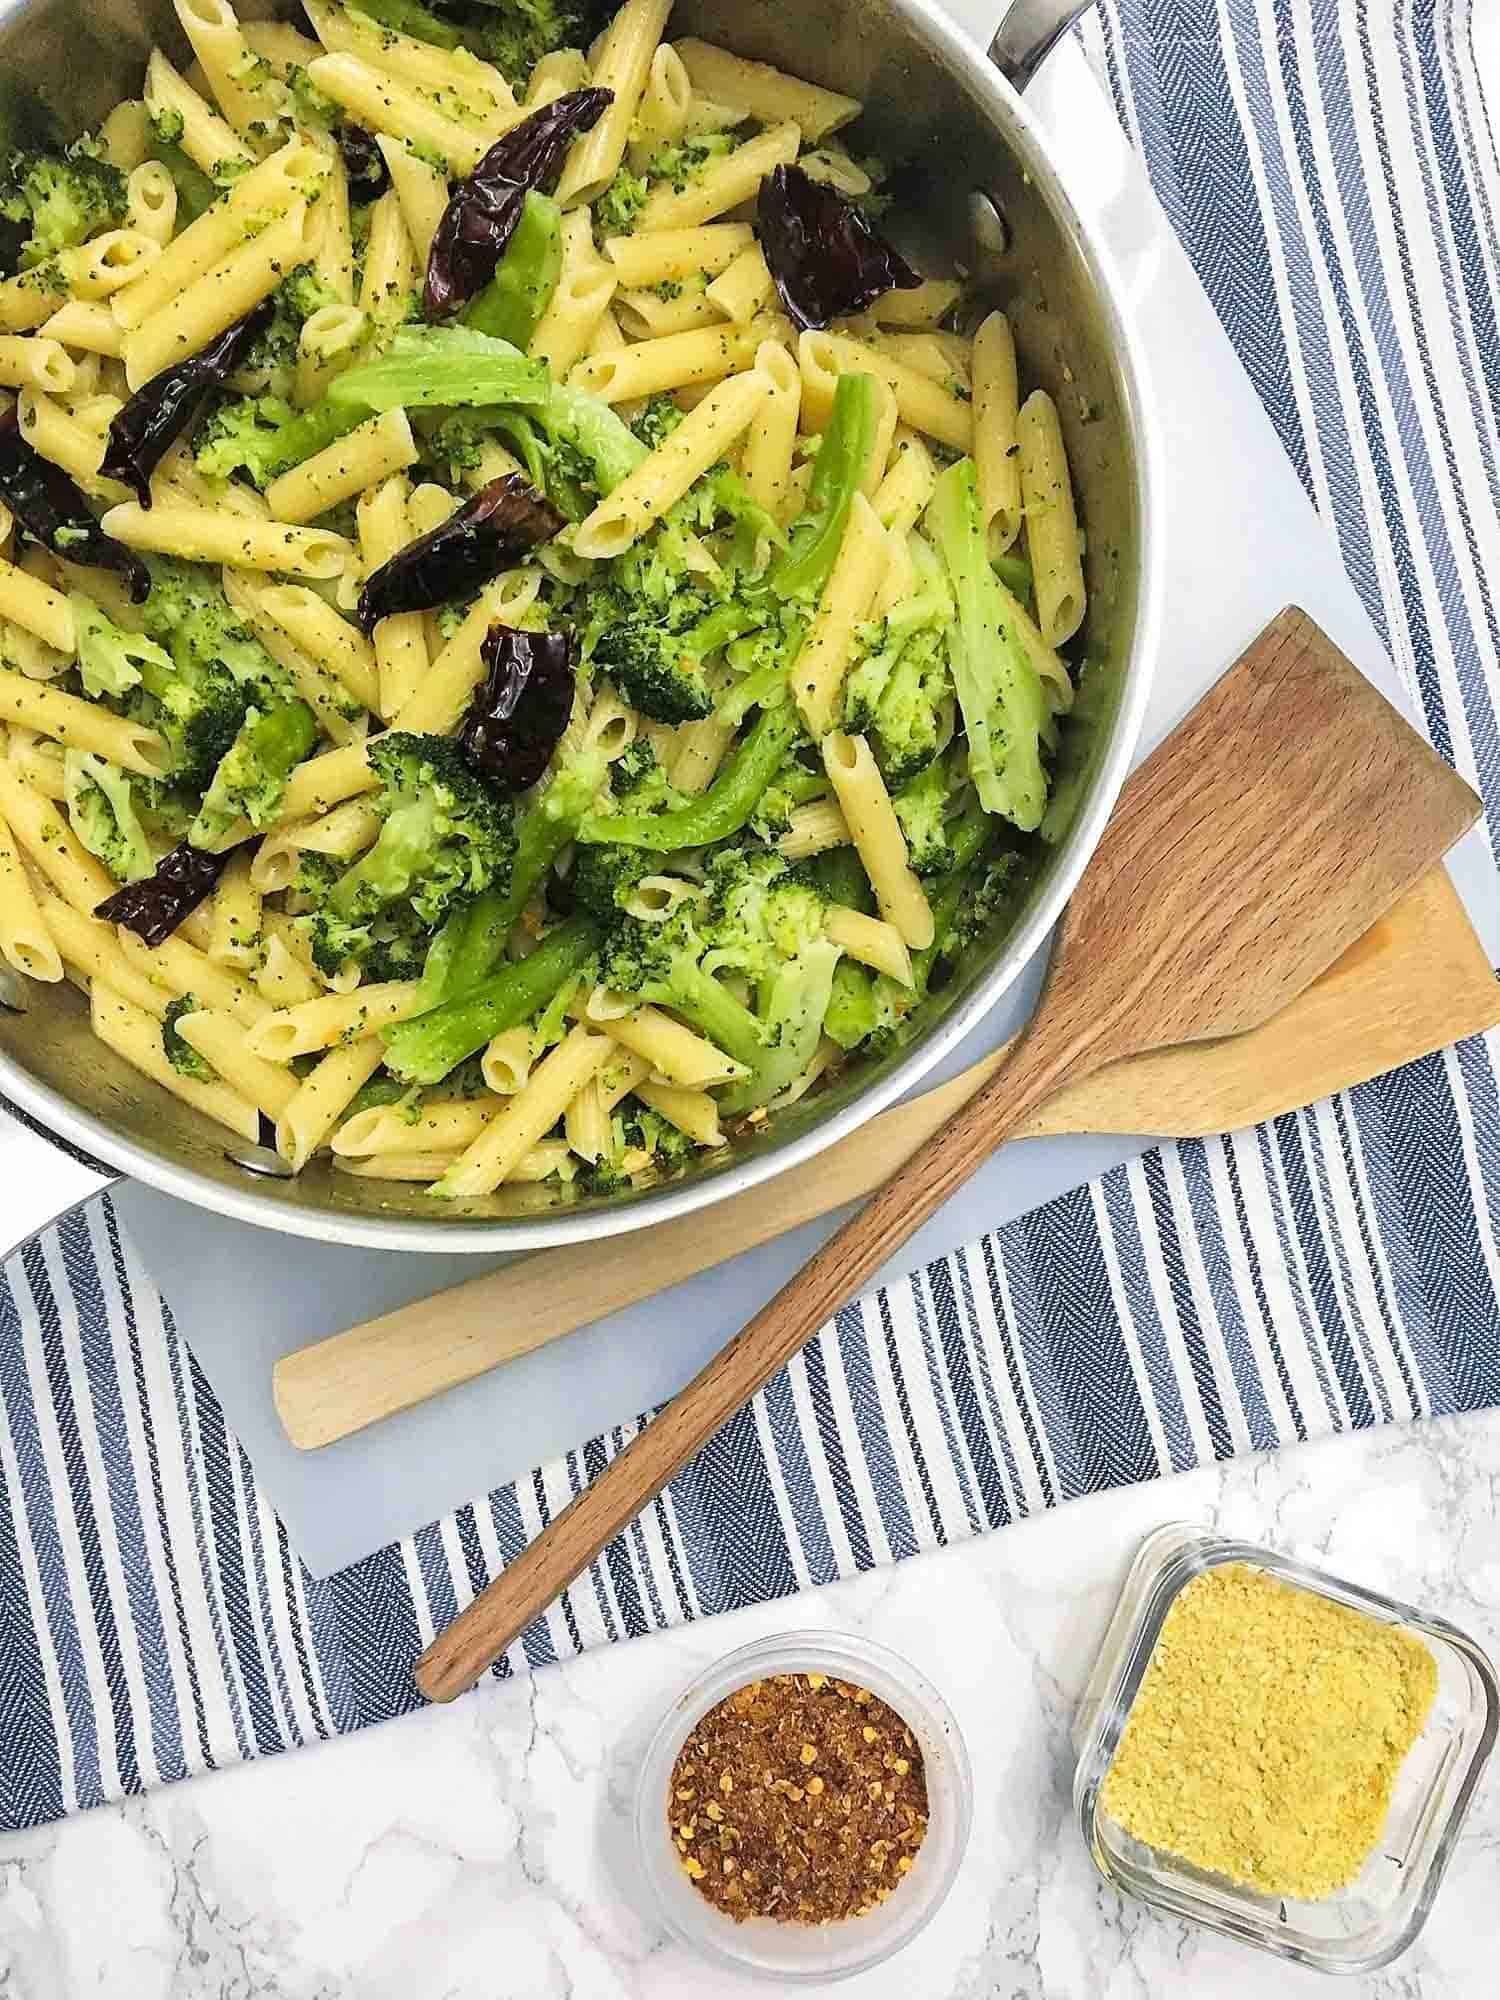 Penne pasta with broccoli and dehydrated chili peppers in stainless steel pan.